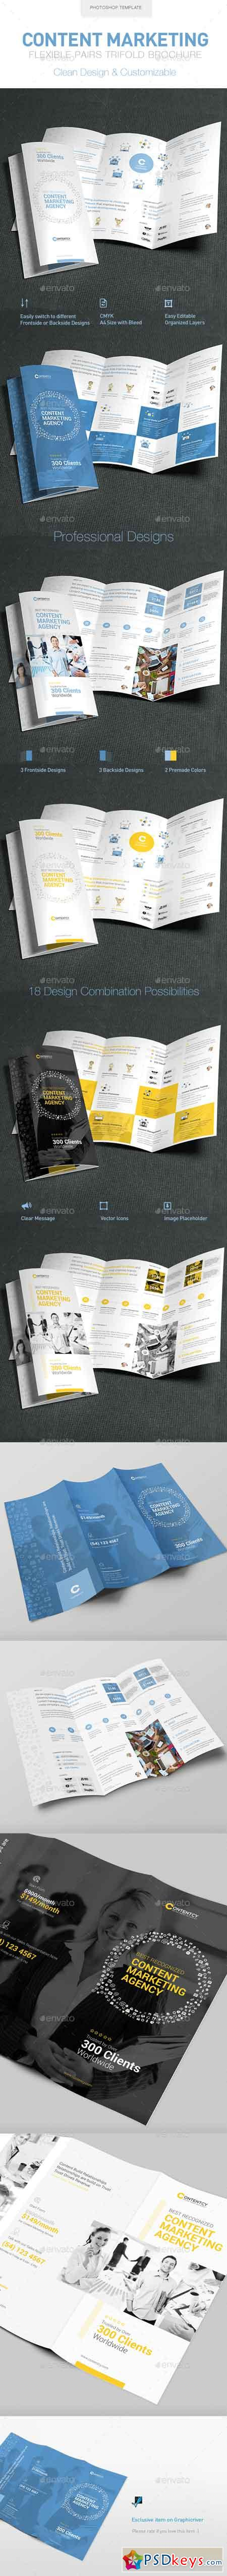 Content Marketing Trifold Brochure 13950268